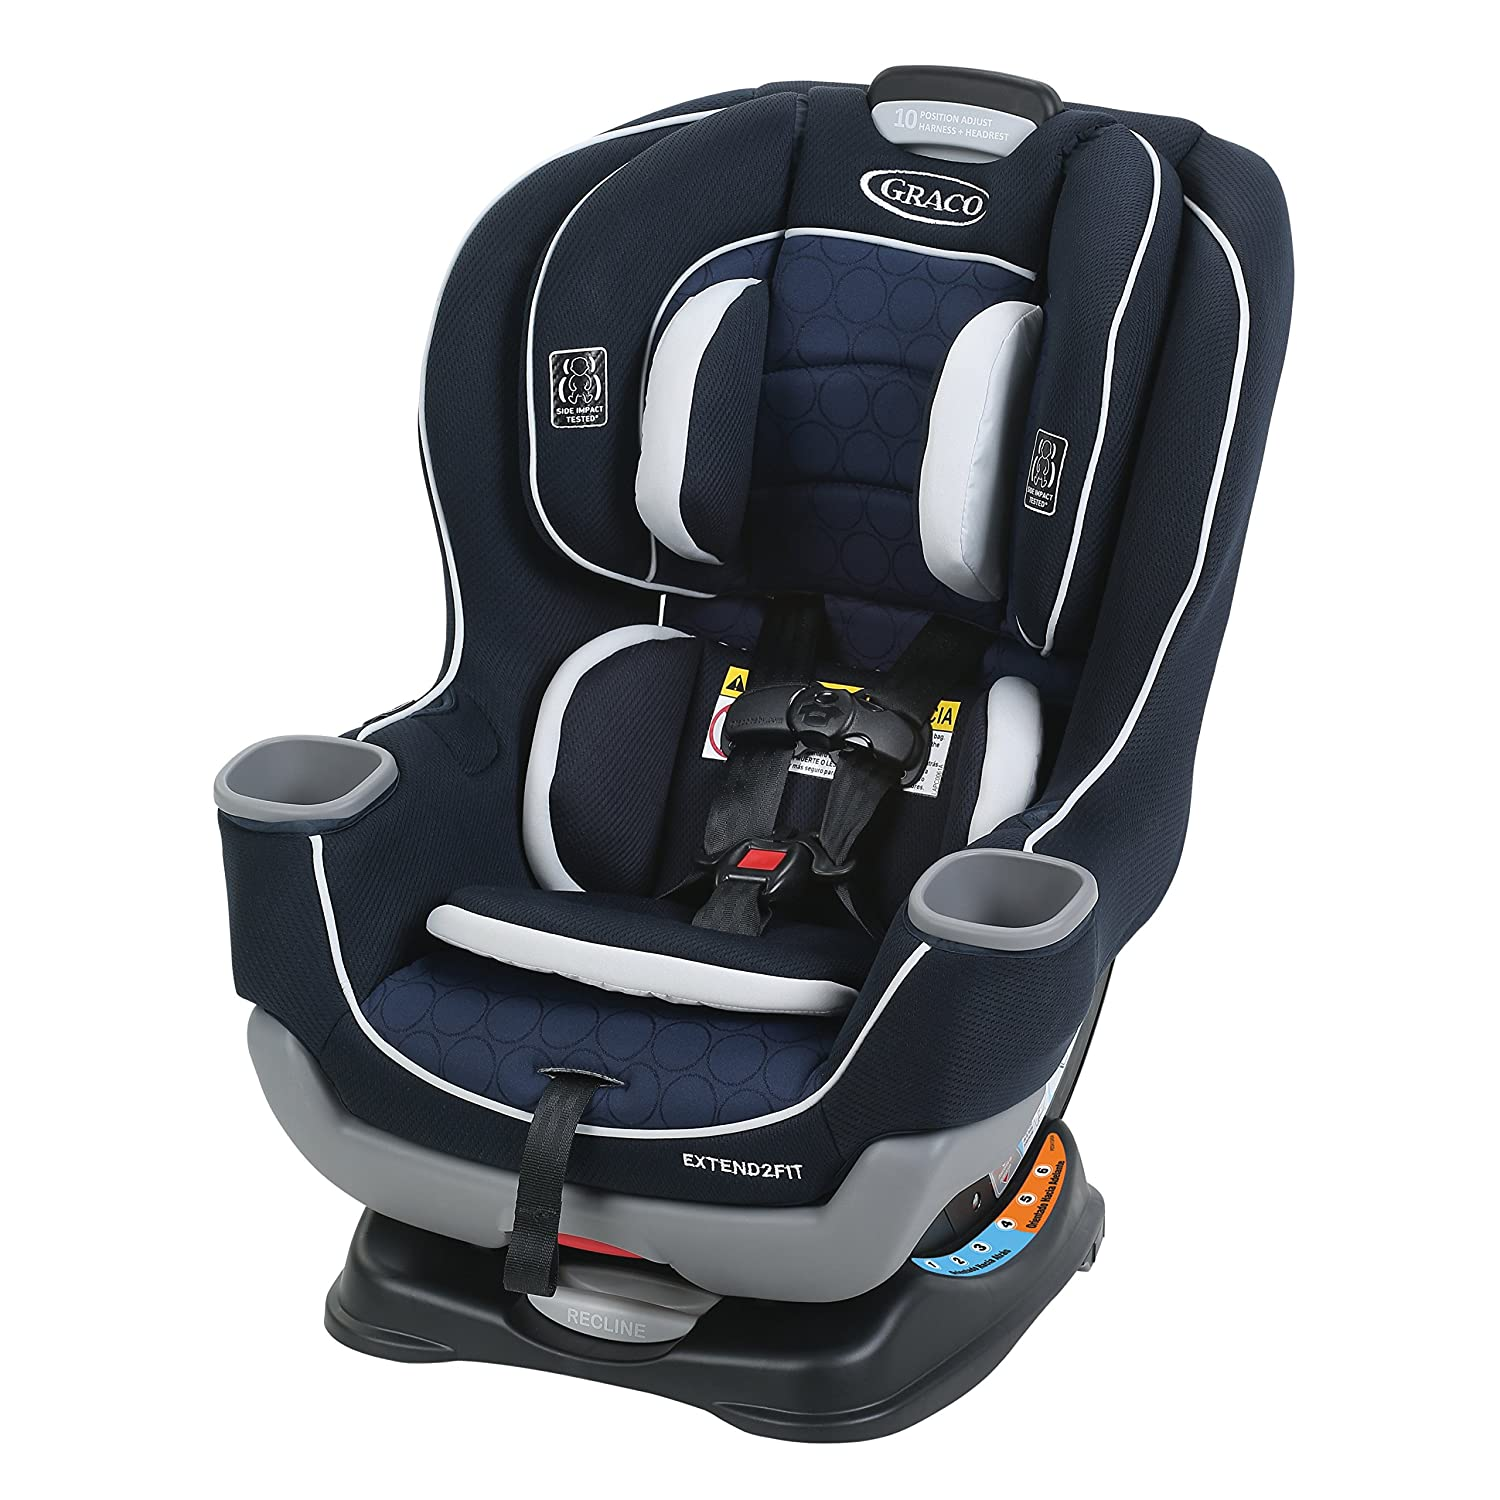 Graco Extend2Fit Convertible Car Seat, Campaign 2013694